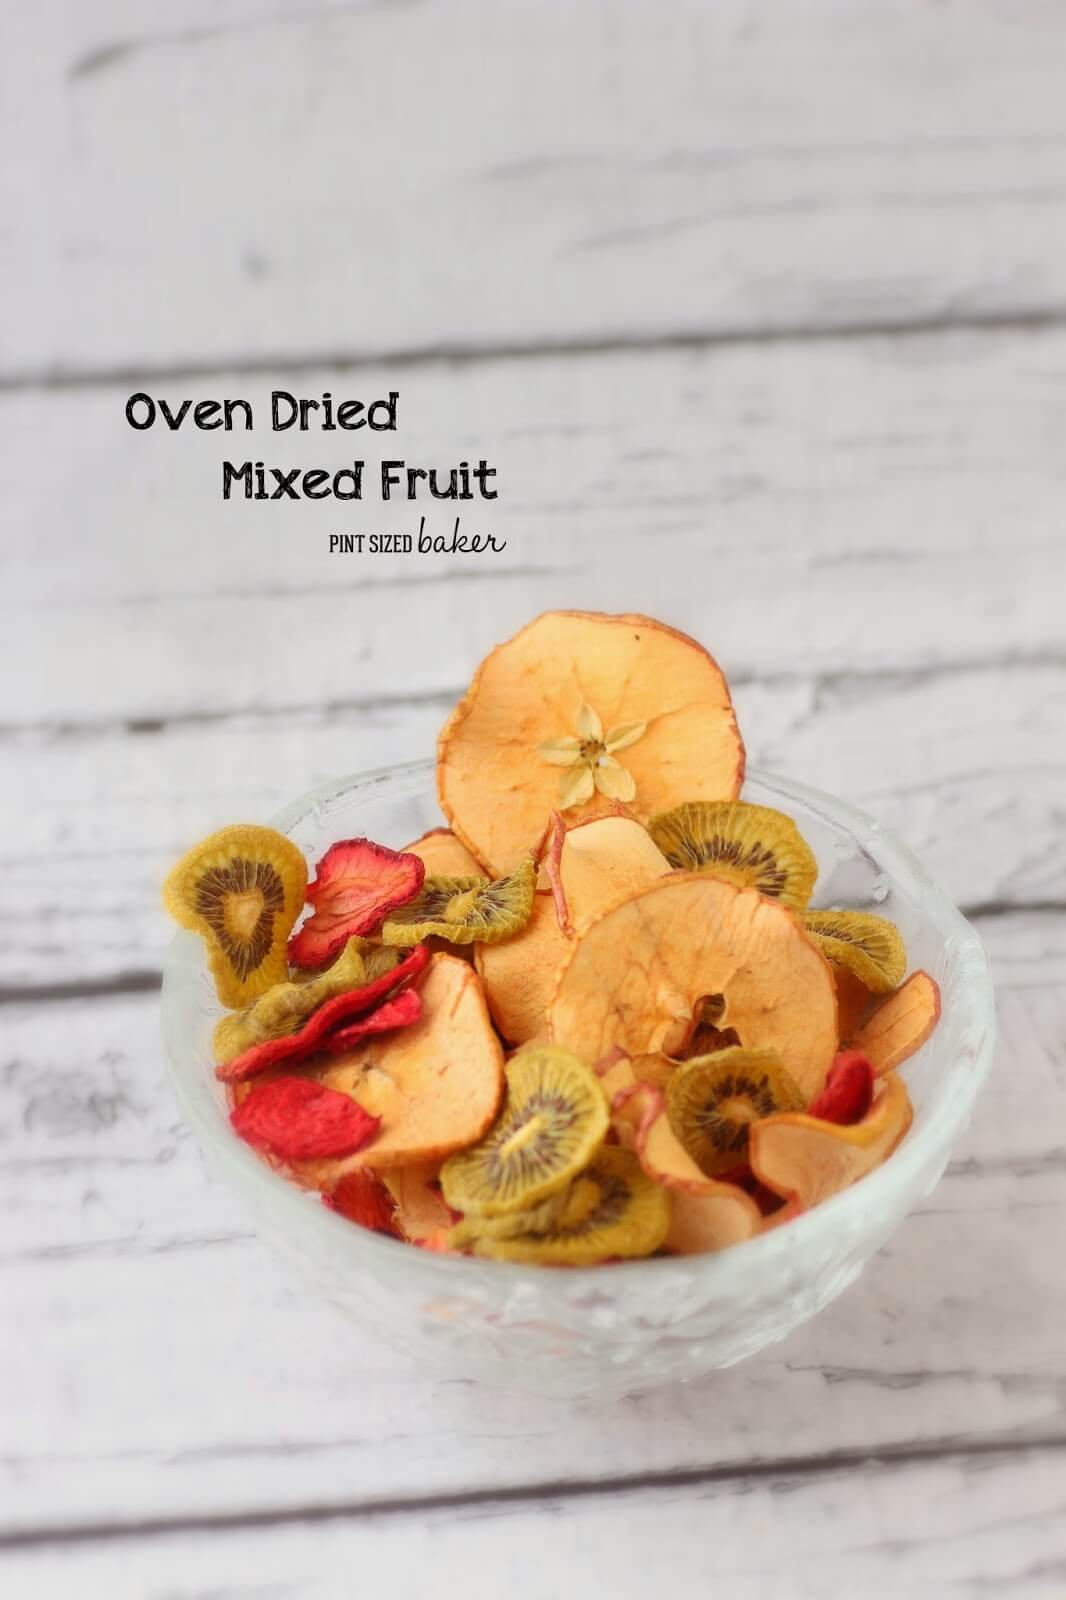 Oven Dried Mixed Fruit